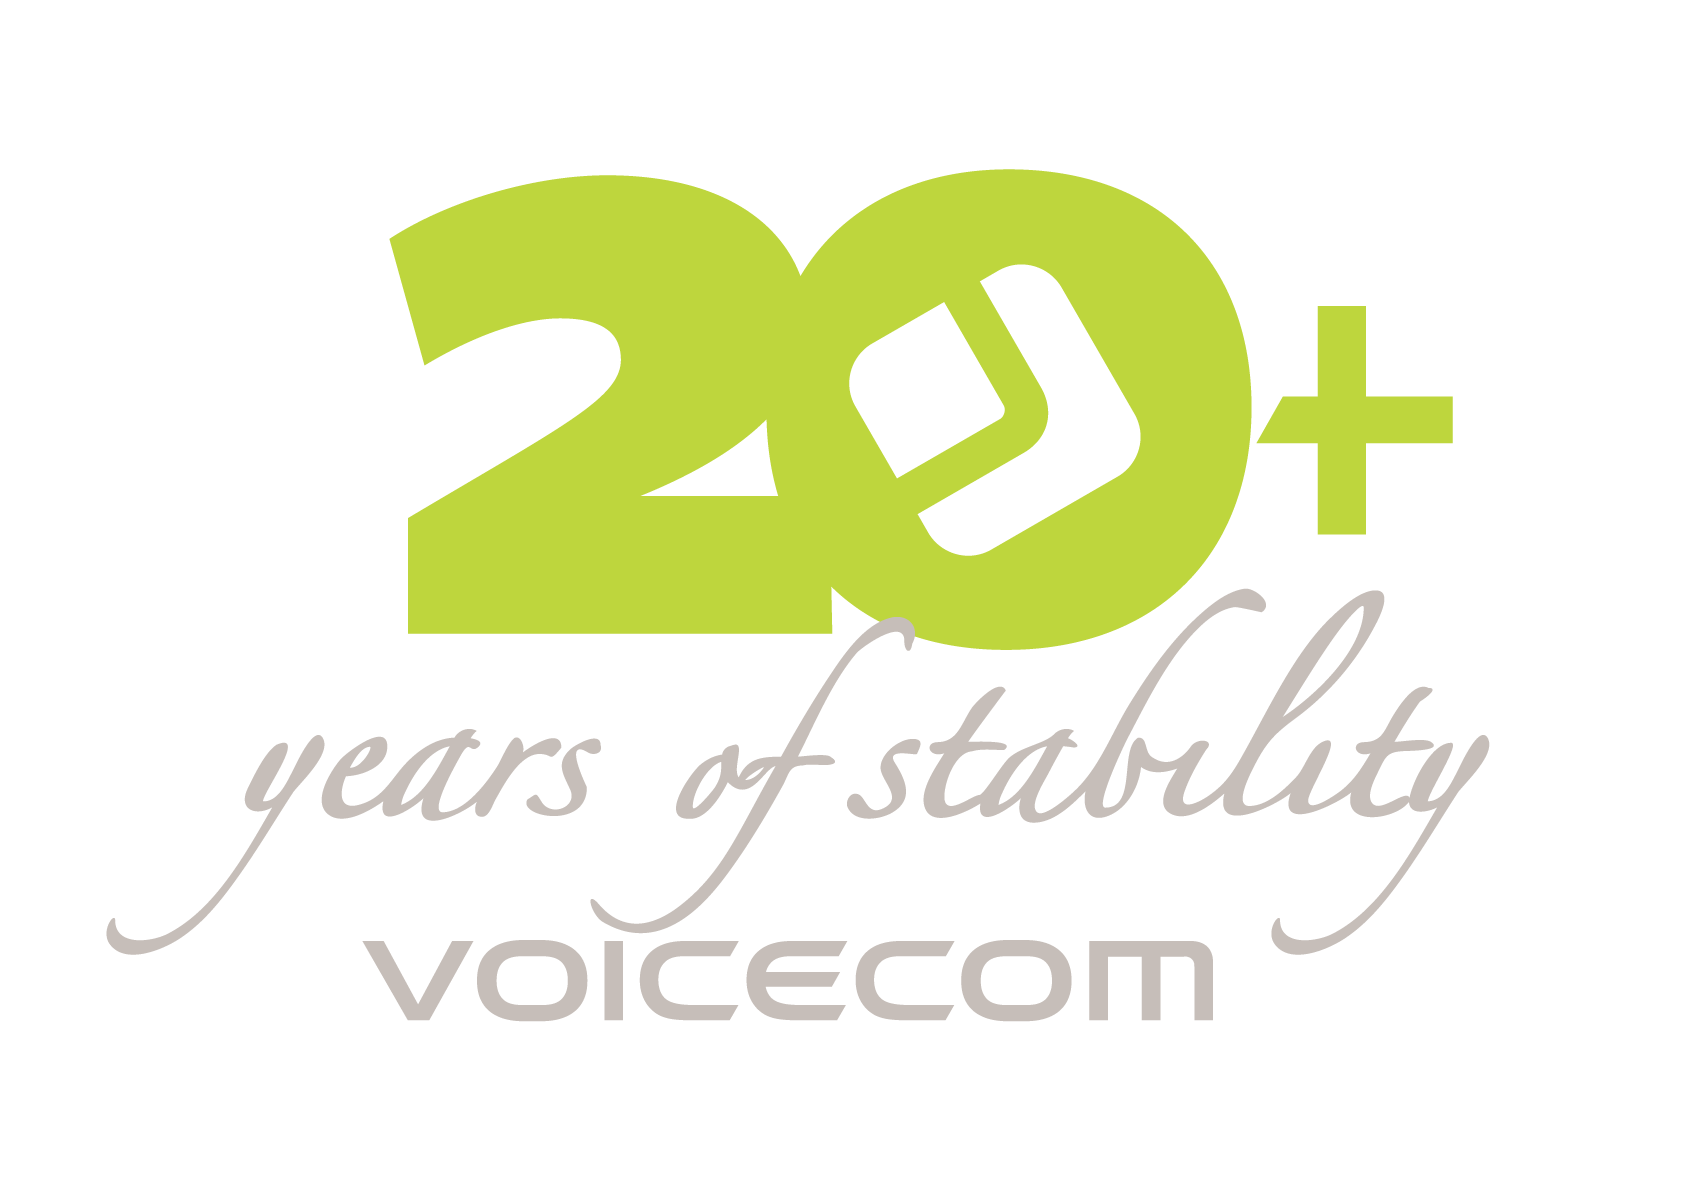 Voicecom: 20 years of stability